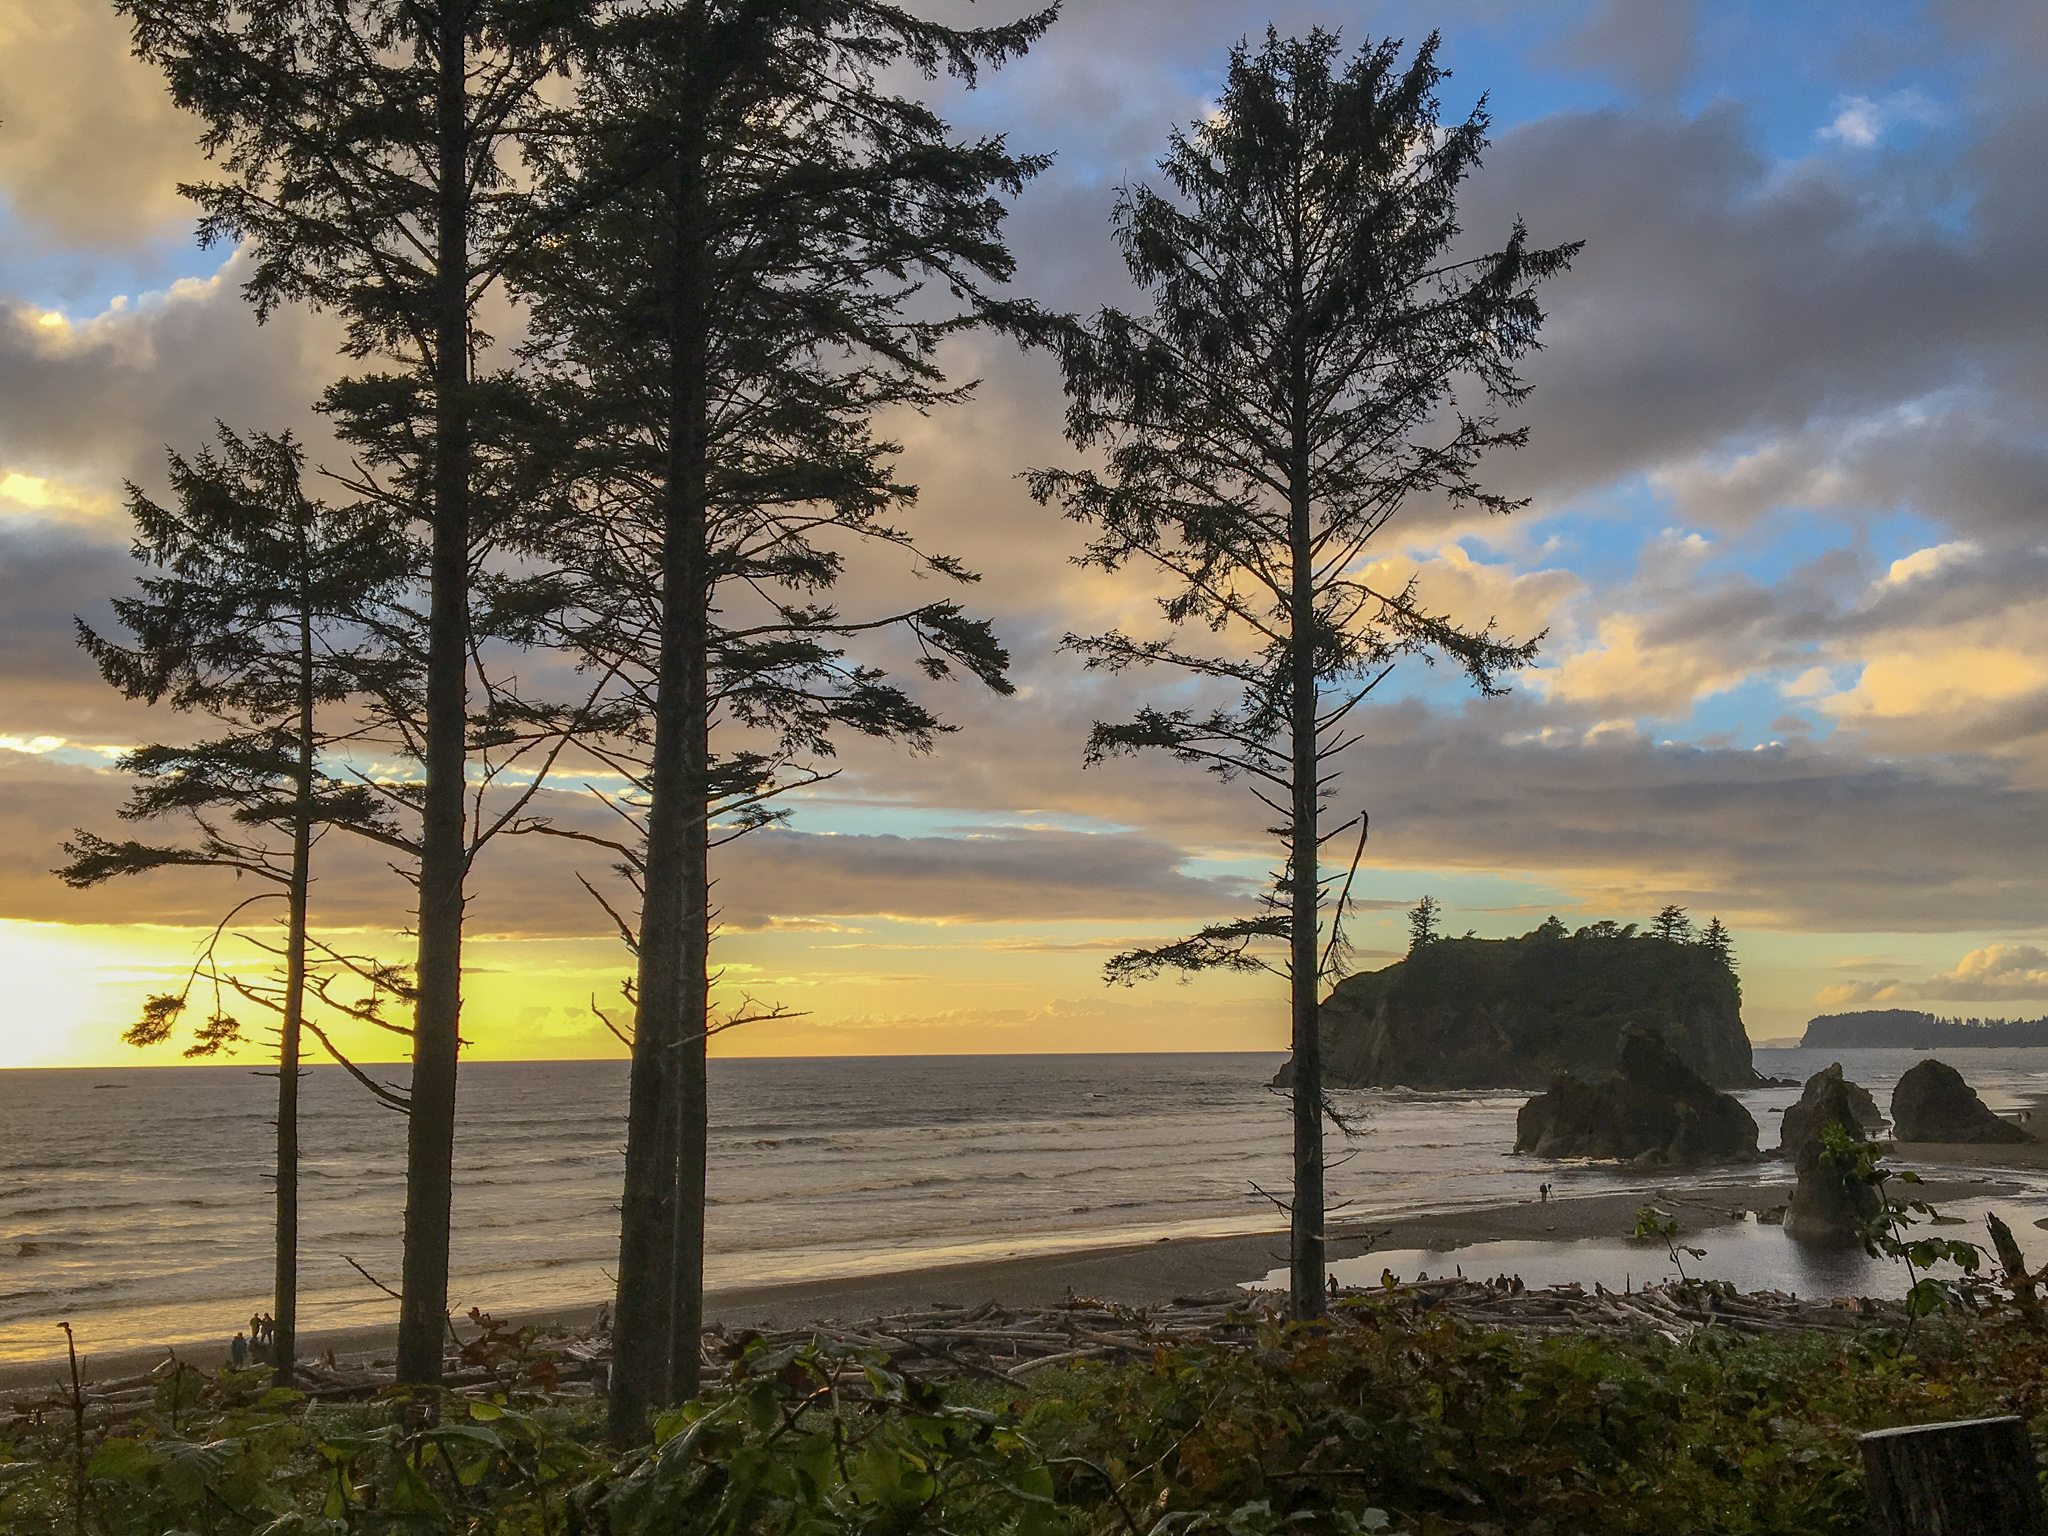 Looking through tall, skinny trees onto beach with sea stacks and rolling waves. Sun is setting and sky is yellow